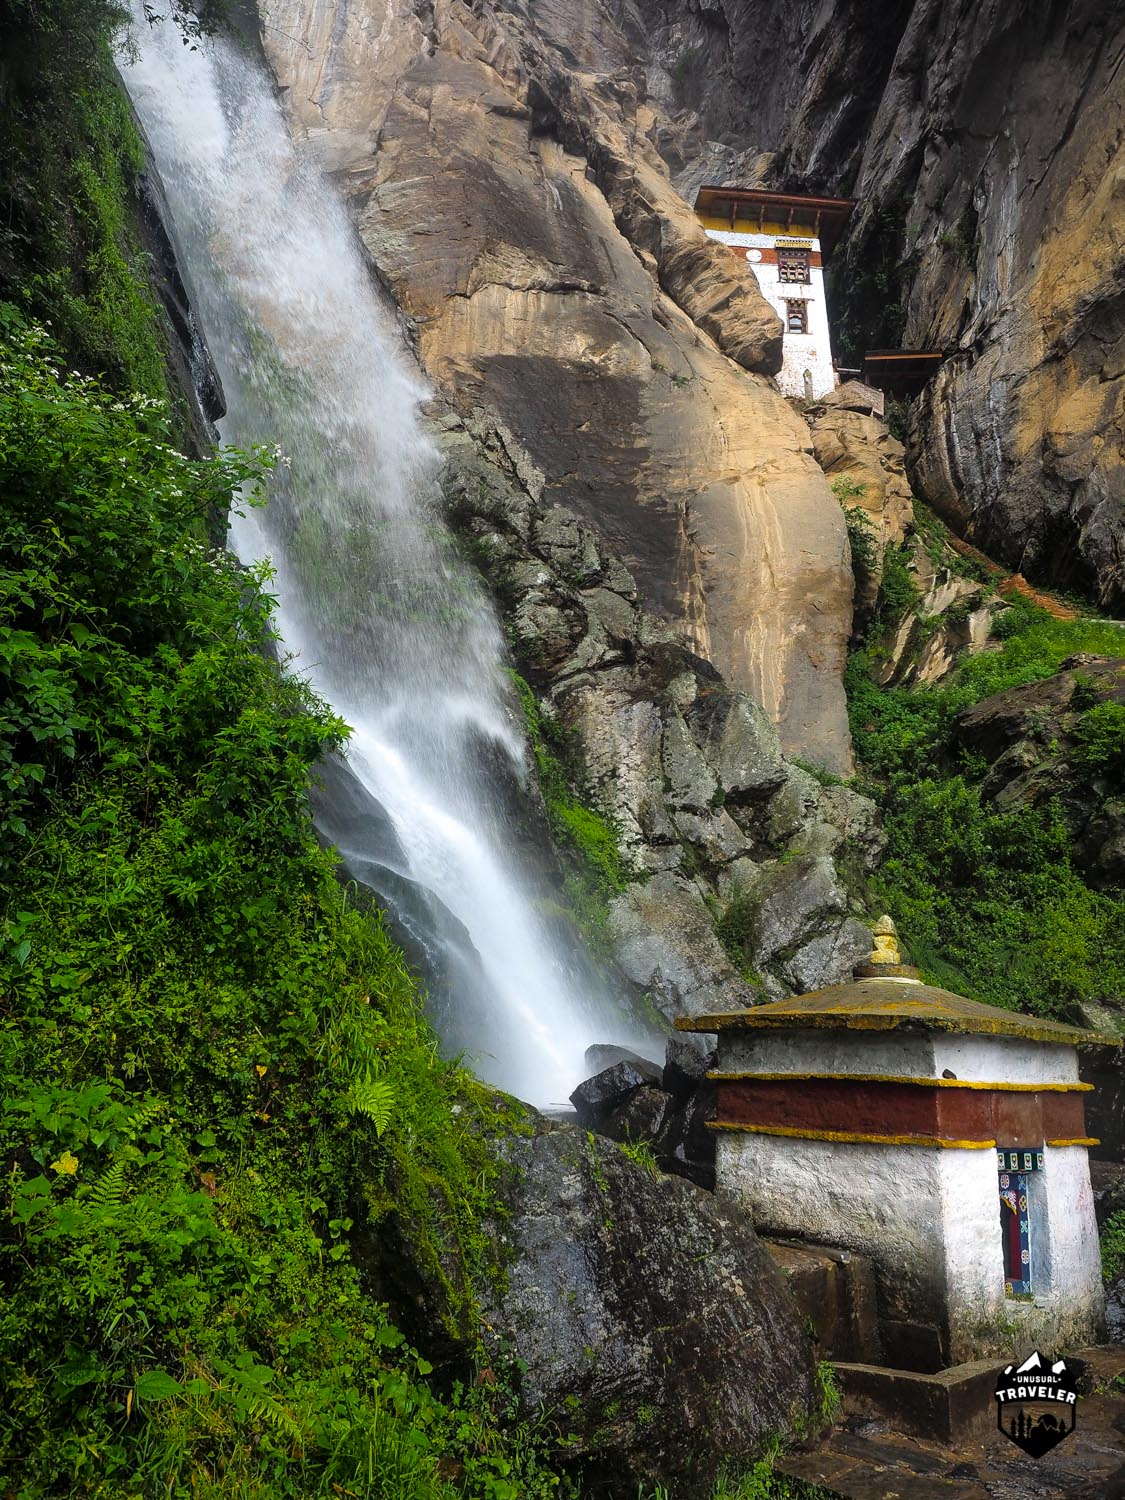 There´s monastery's built into the hardest places, here on the way to the Tiger nest monastery.